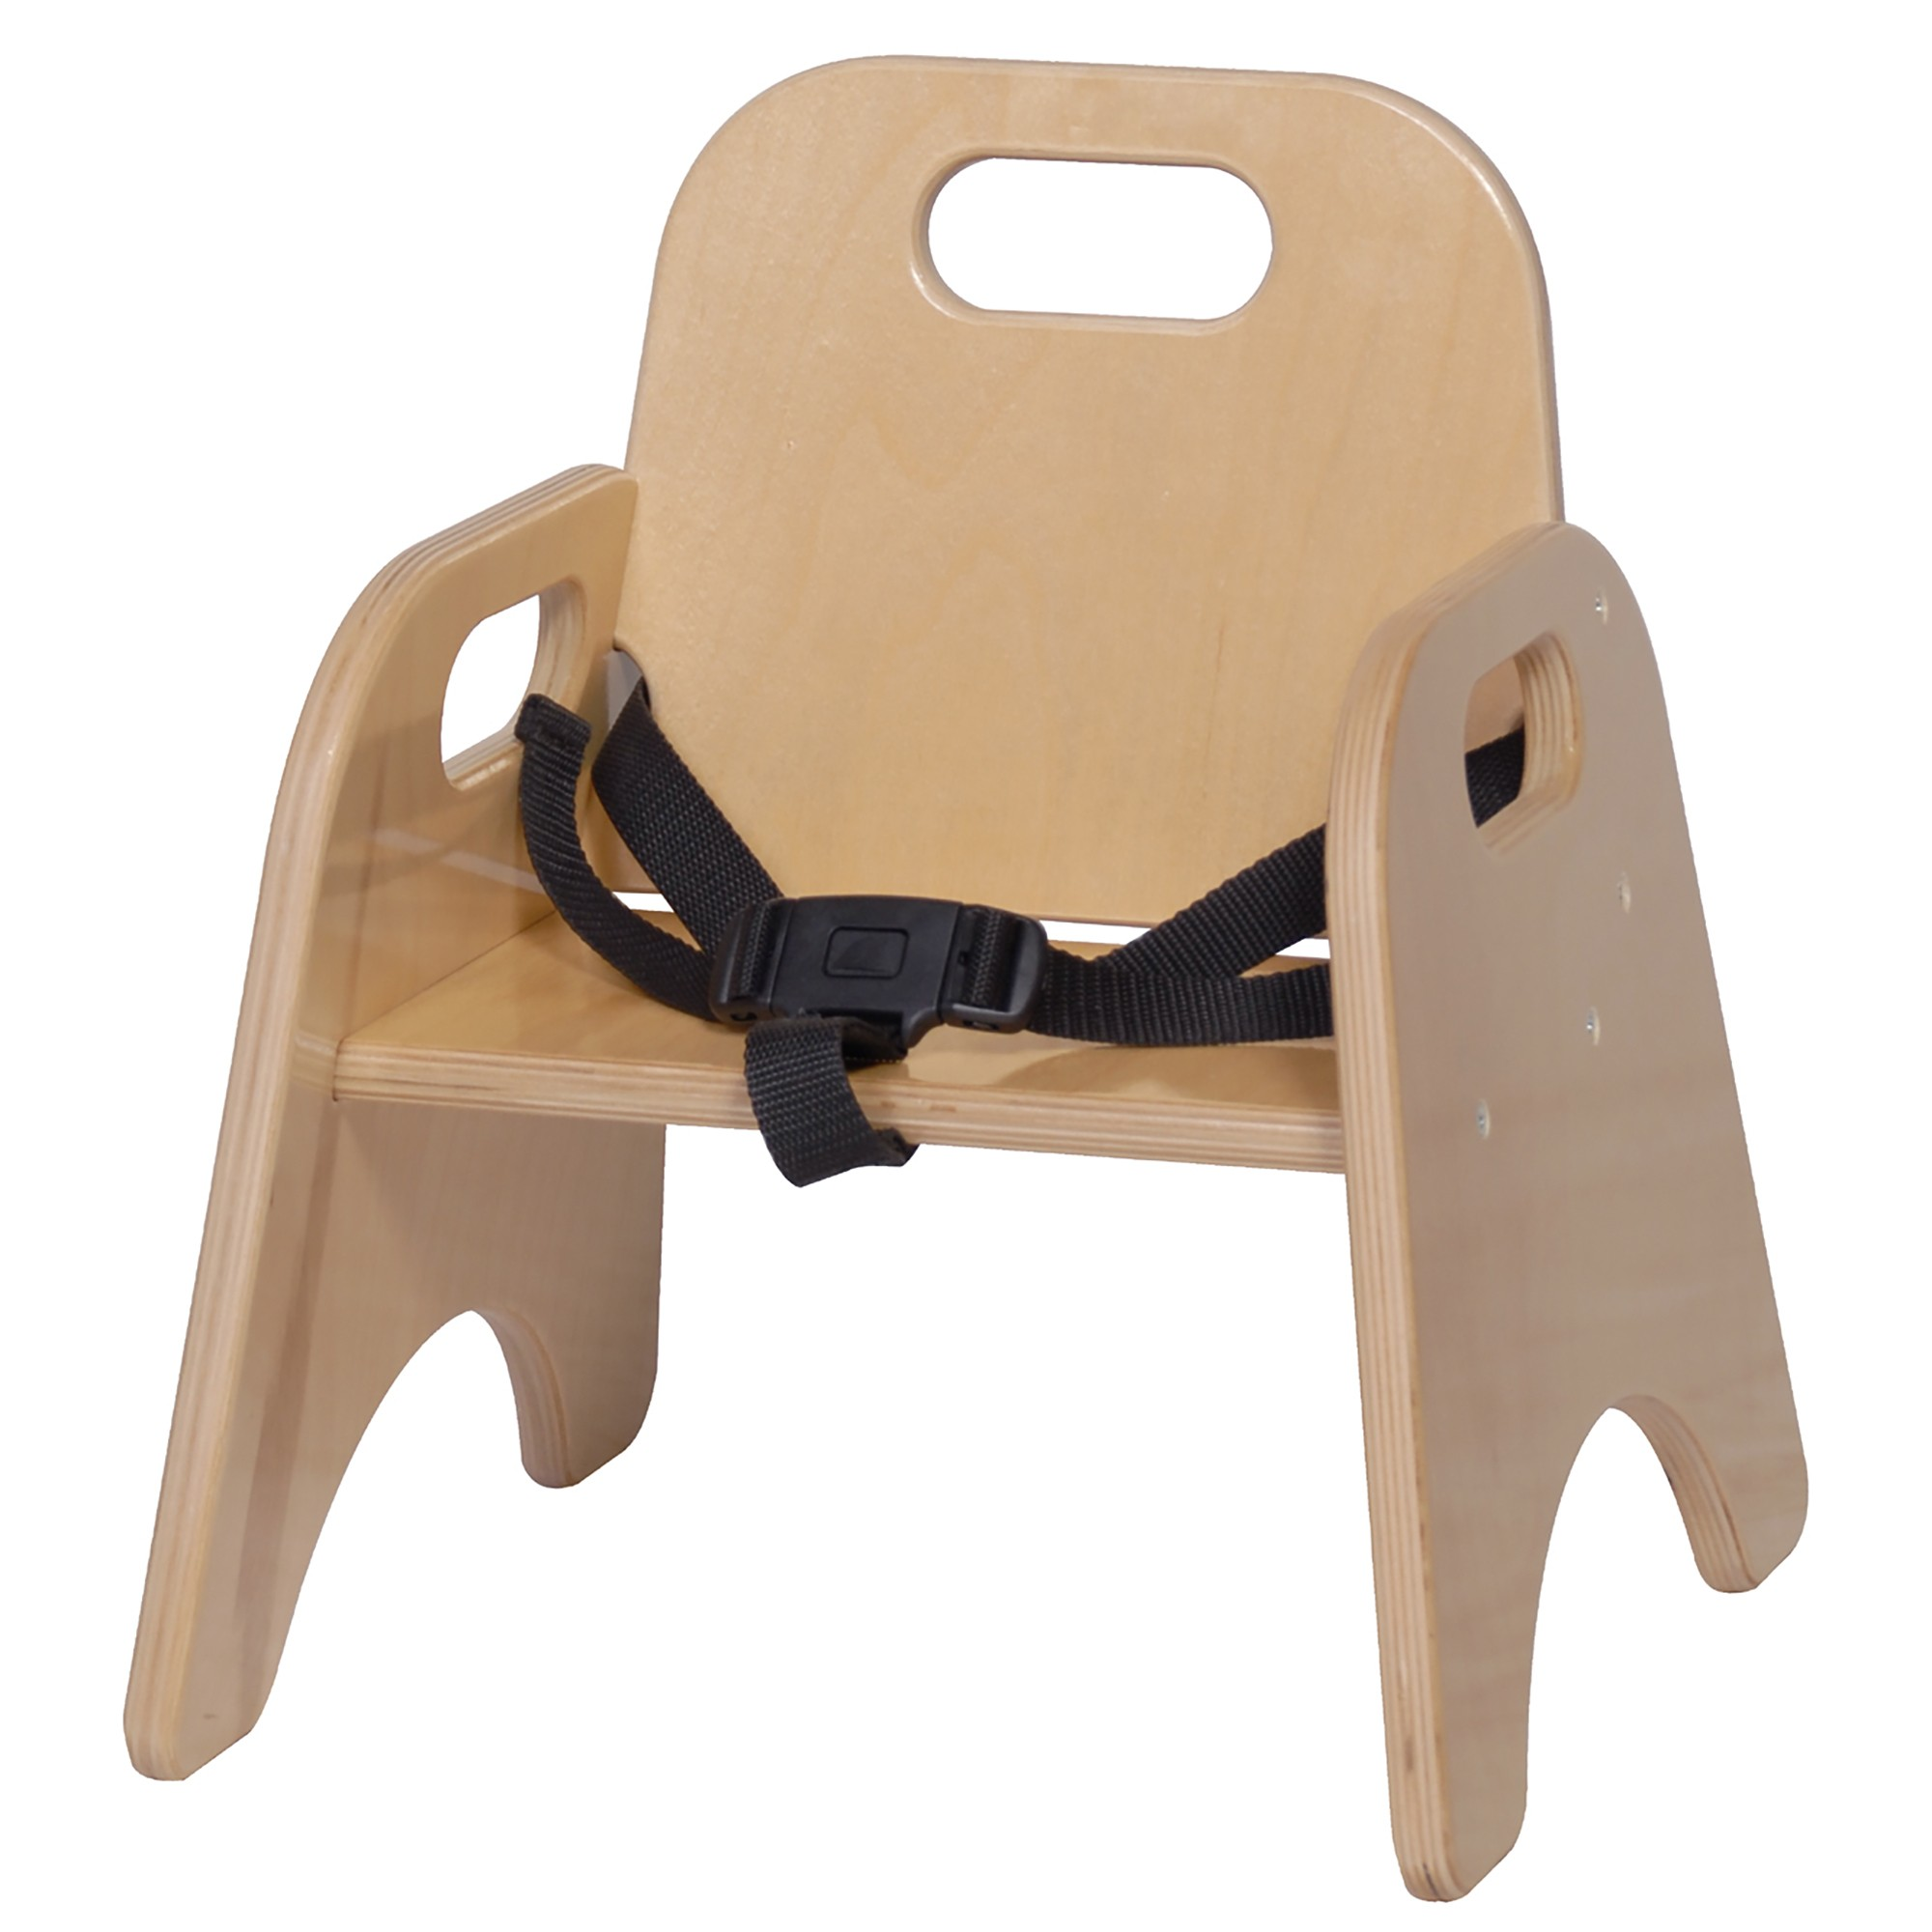 Charmant Steffy Wood Products 7 Inch Toddler Chair With Strap